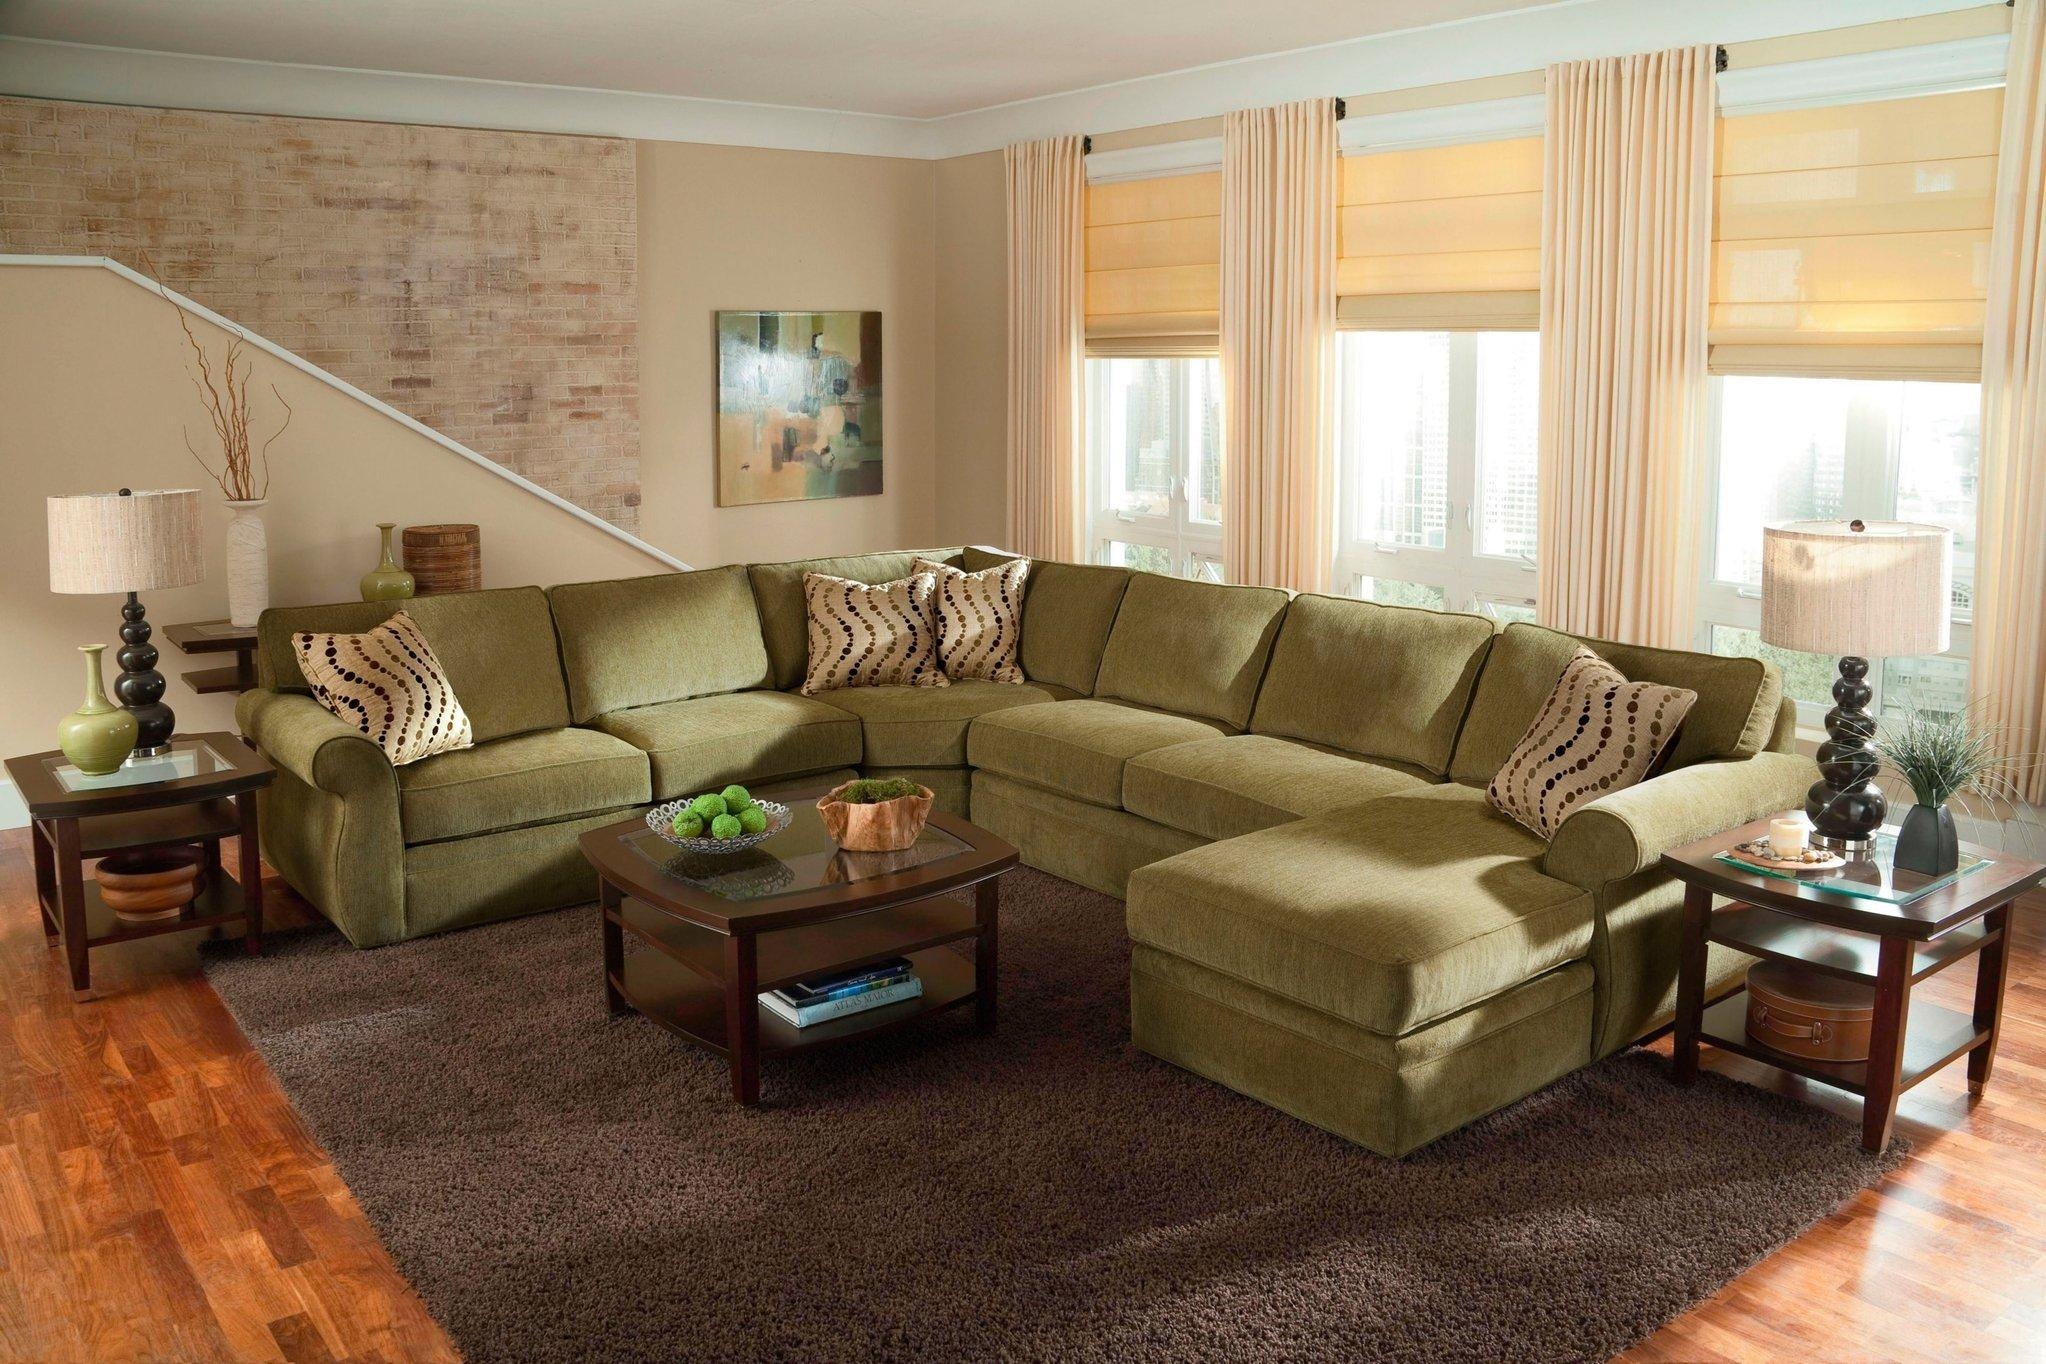 Interior: Luxury Oversized Sectional Sofa For Awesome Living Room With Regard To Huge Sofas (View 10 of 20)